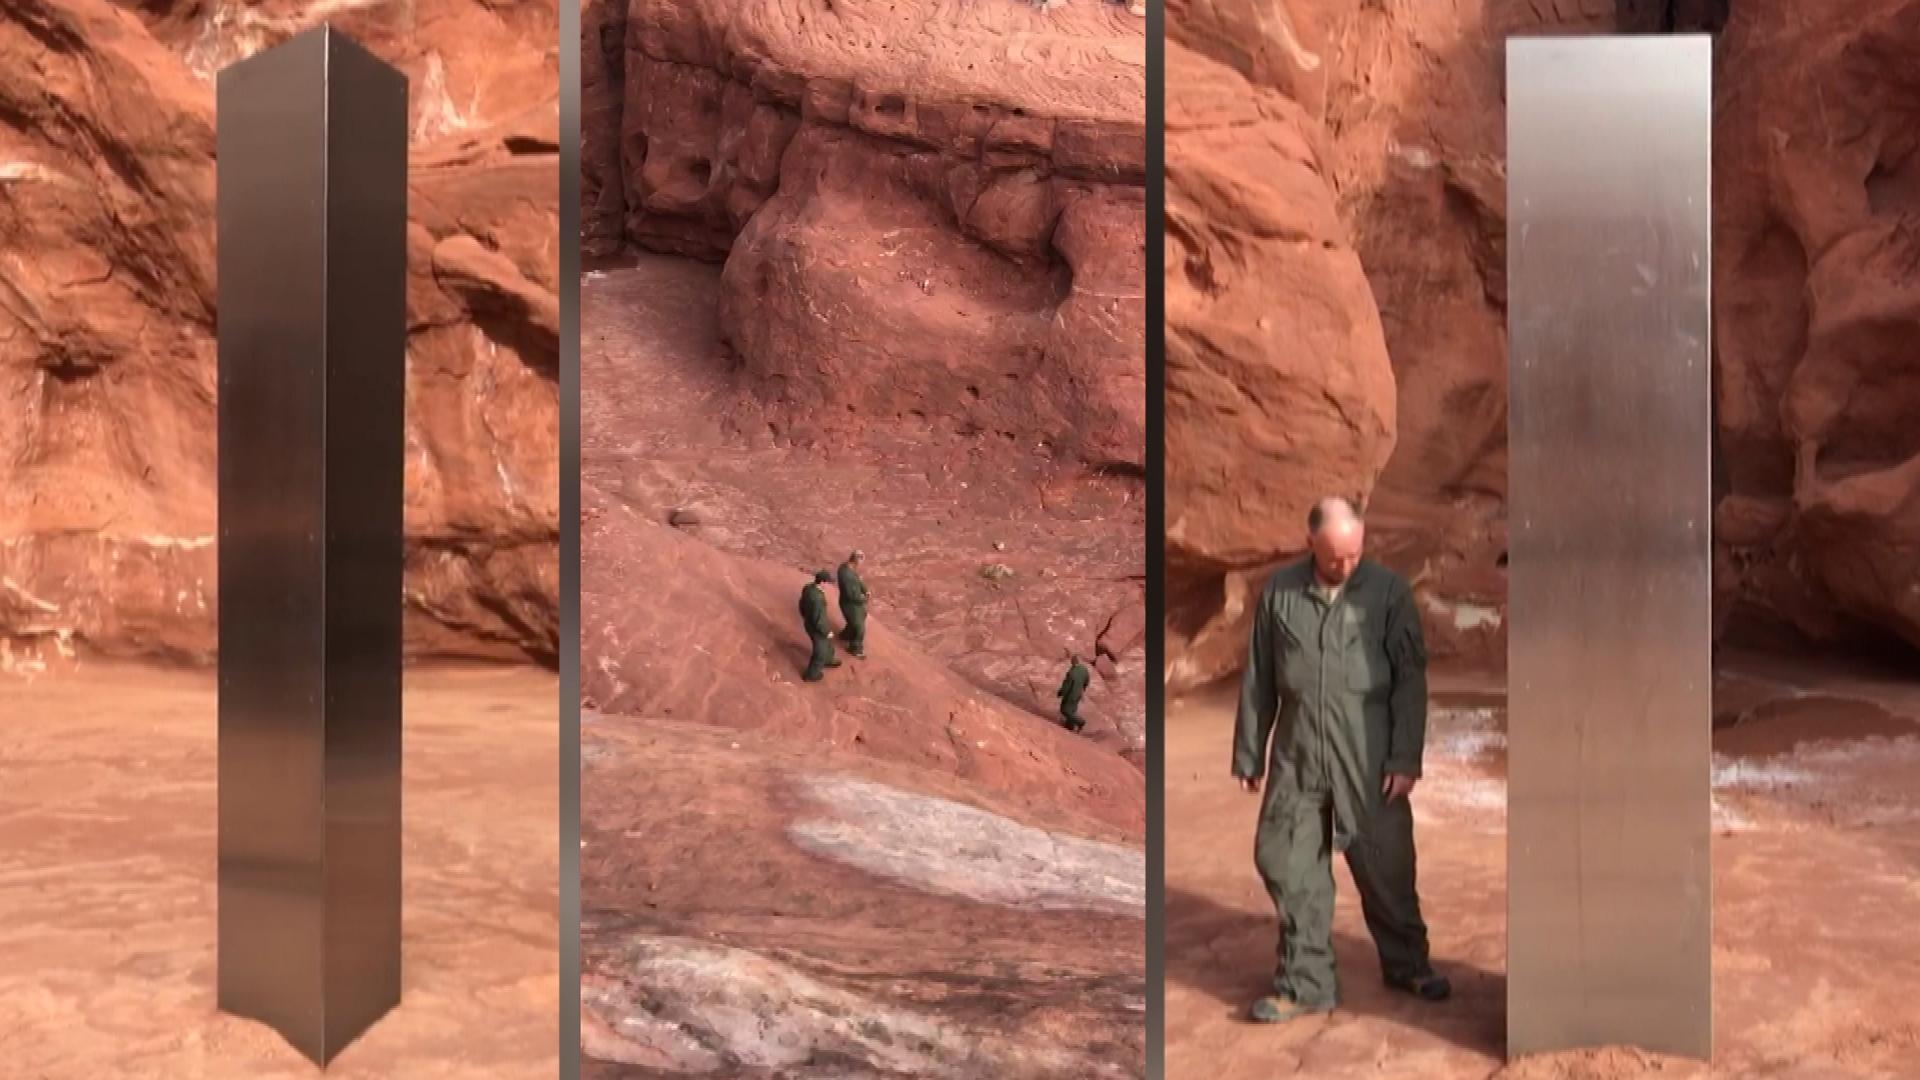 nca4clfzzsd2tm https www insideedition com helicopter finds monolith in remote part of utah 63311